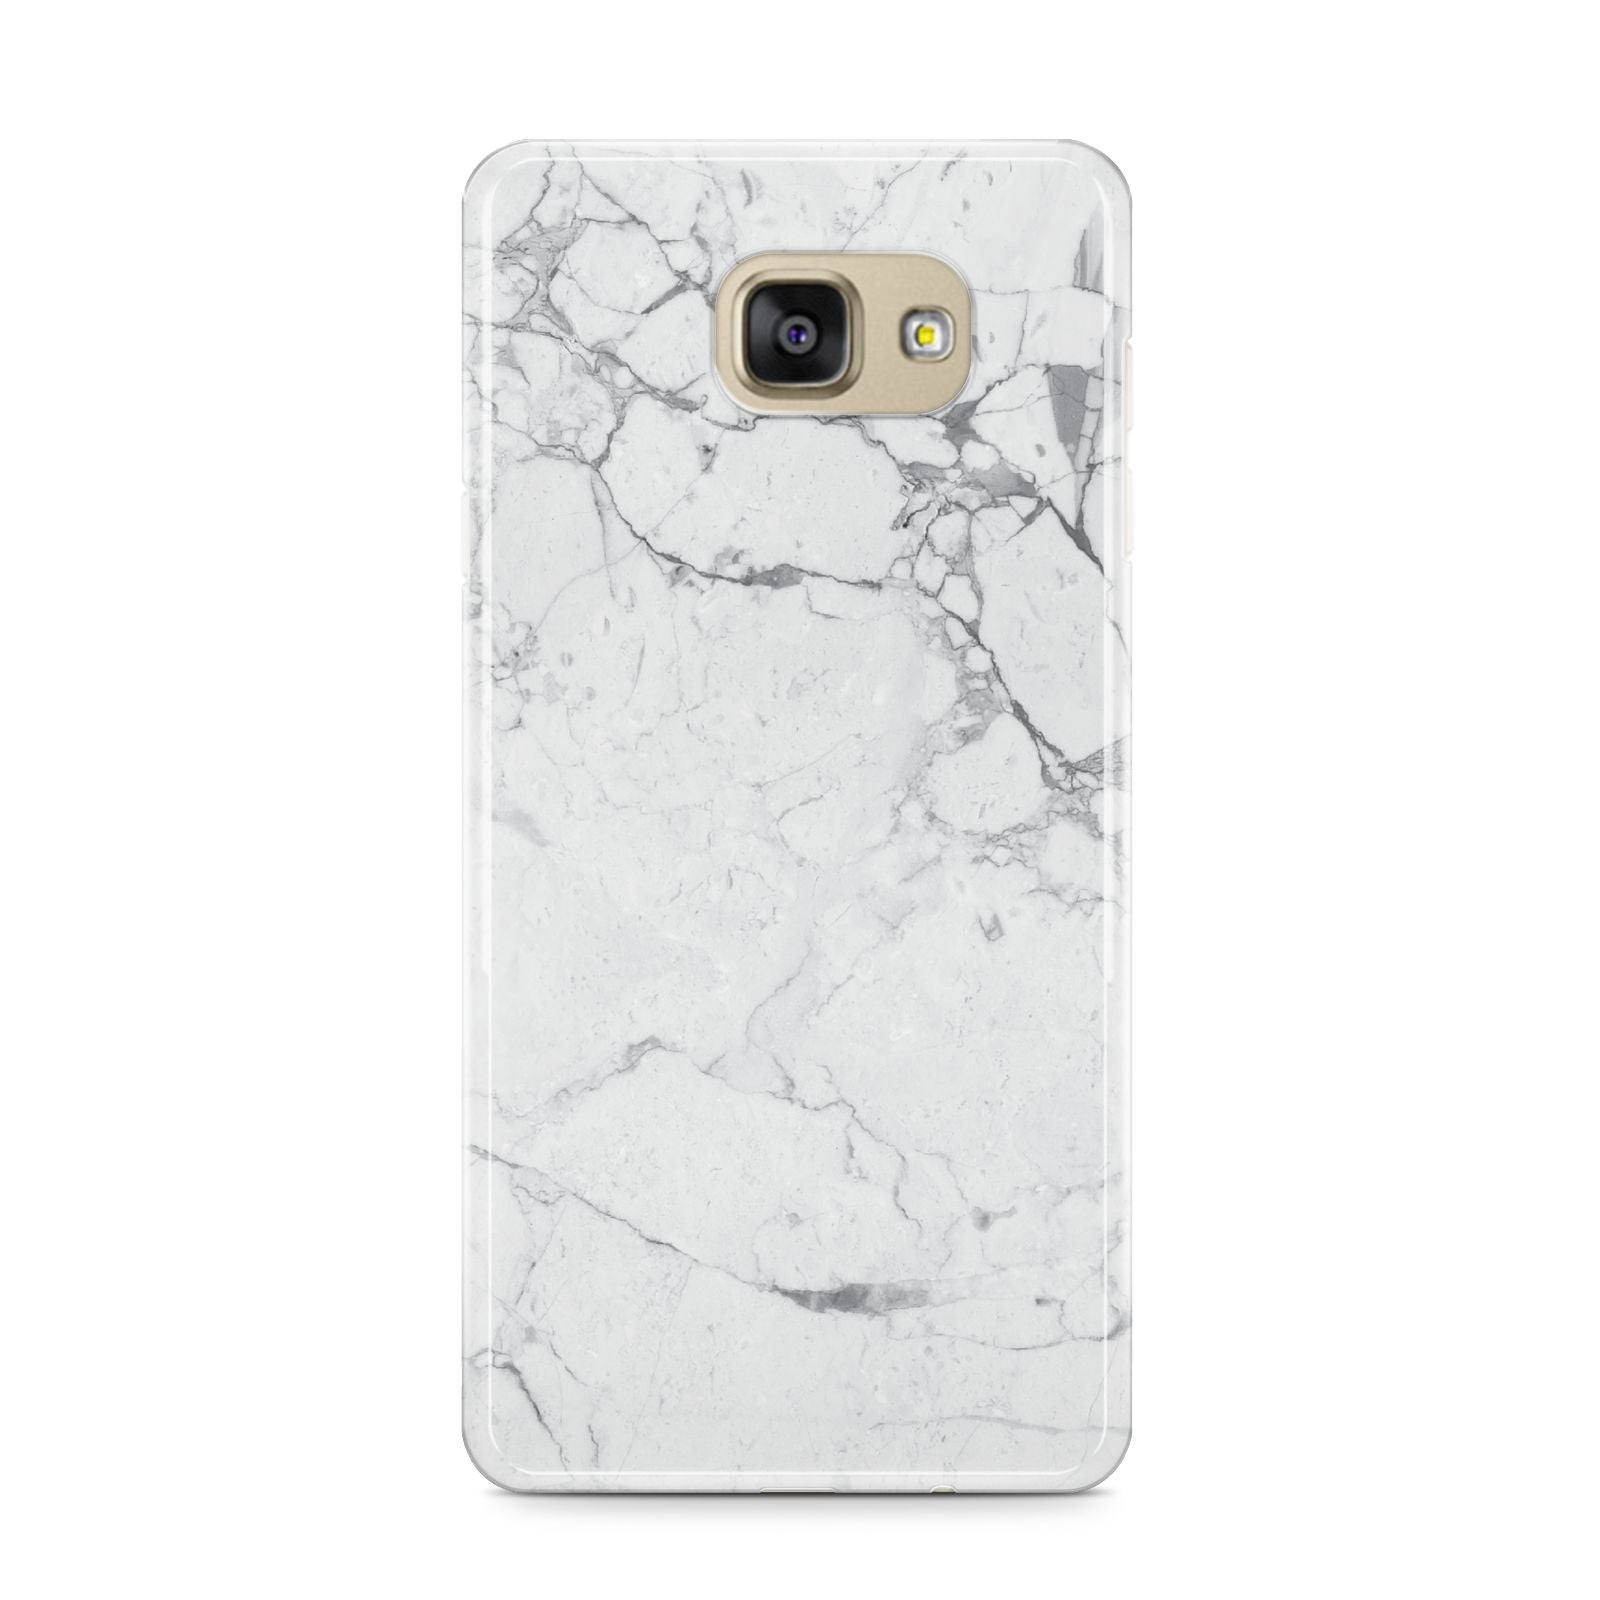 Faux Marble Effect Grey White Samsung Galaxy A9 2016 Case on gold phone